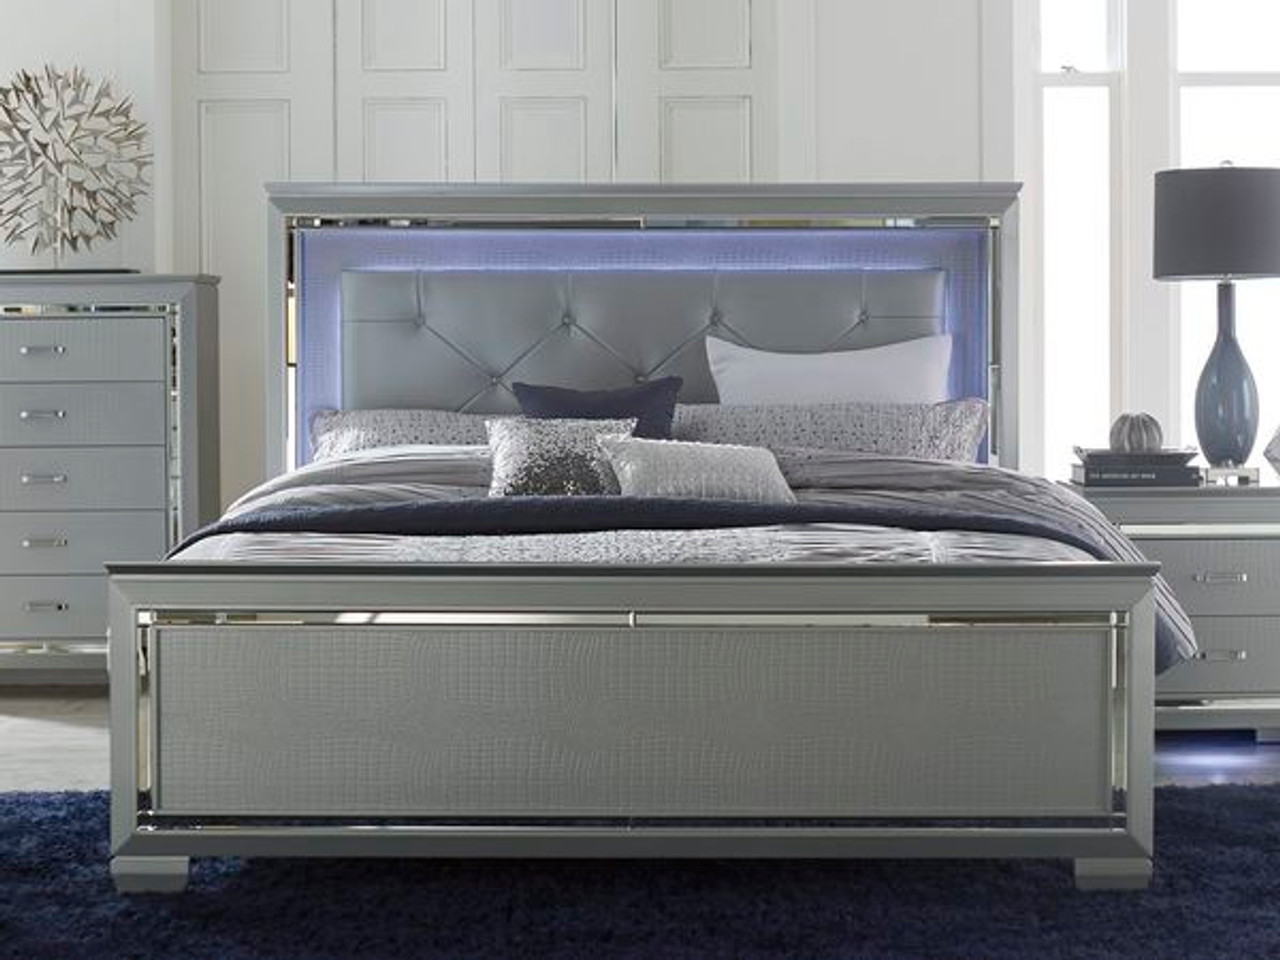 Homelegance Allura Bed 1 & Homelegance Allura Modern Bed Silver with Touch-Engaged LED Lighting ...